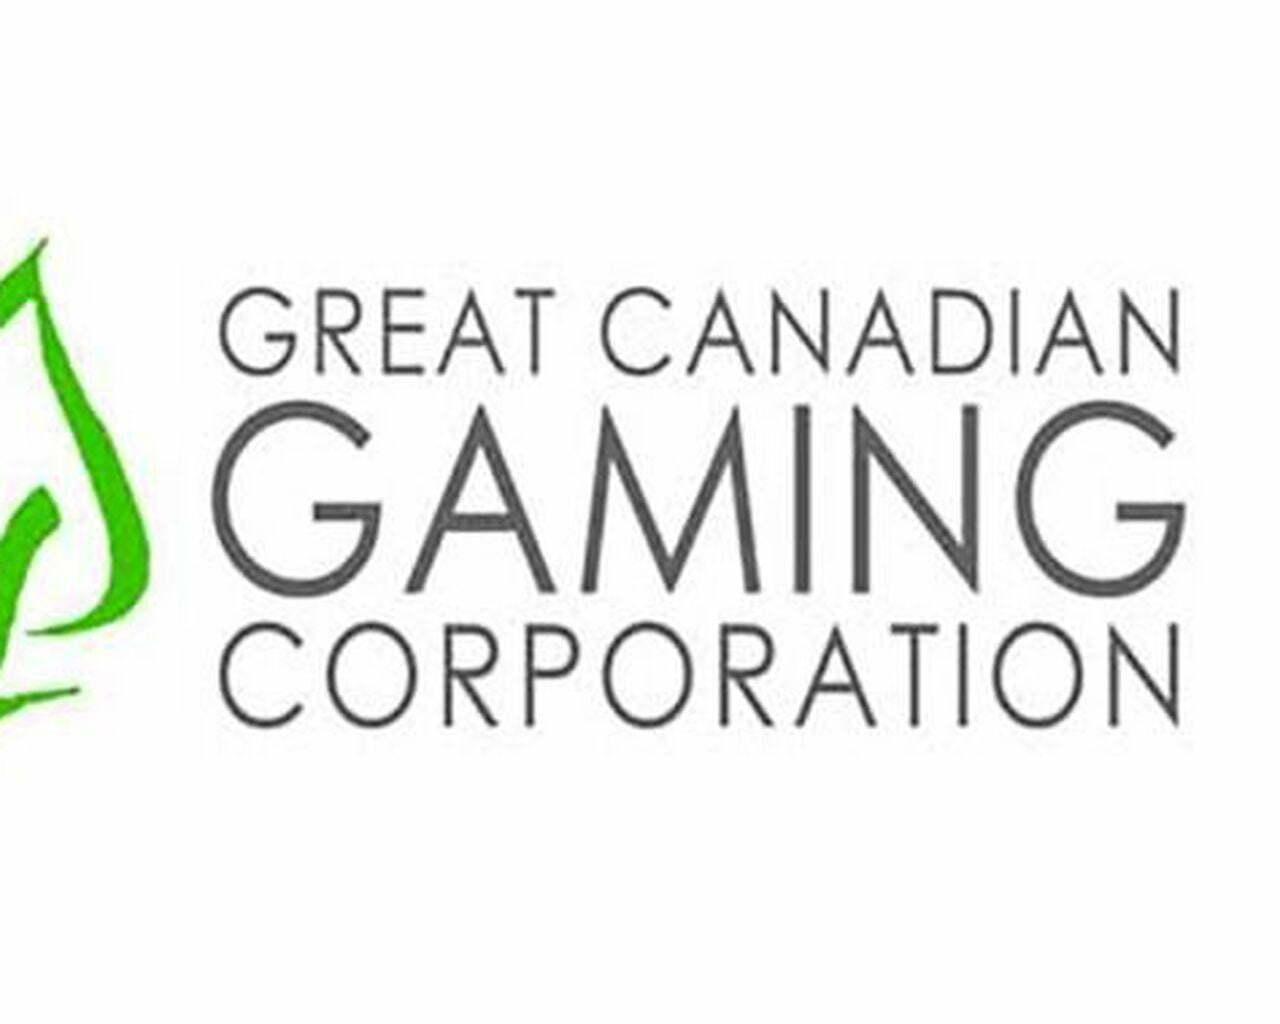 Apollo Global Agrees Great Canadian Gaming Corp Deal